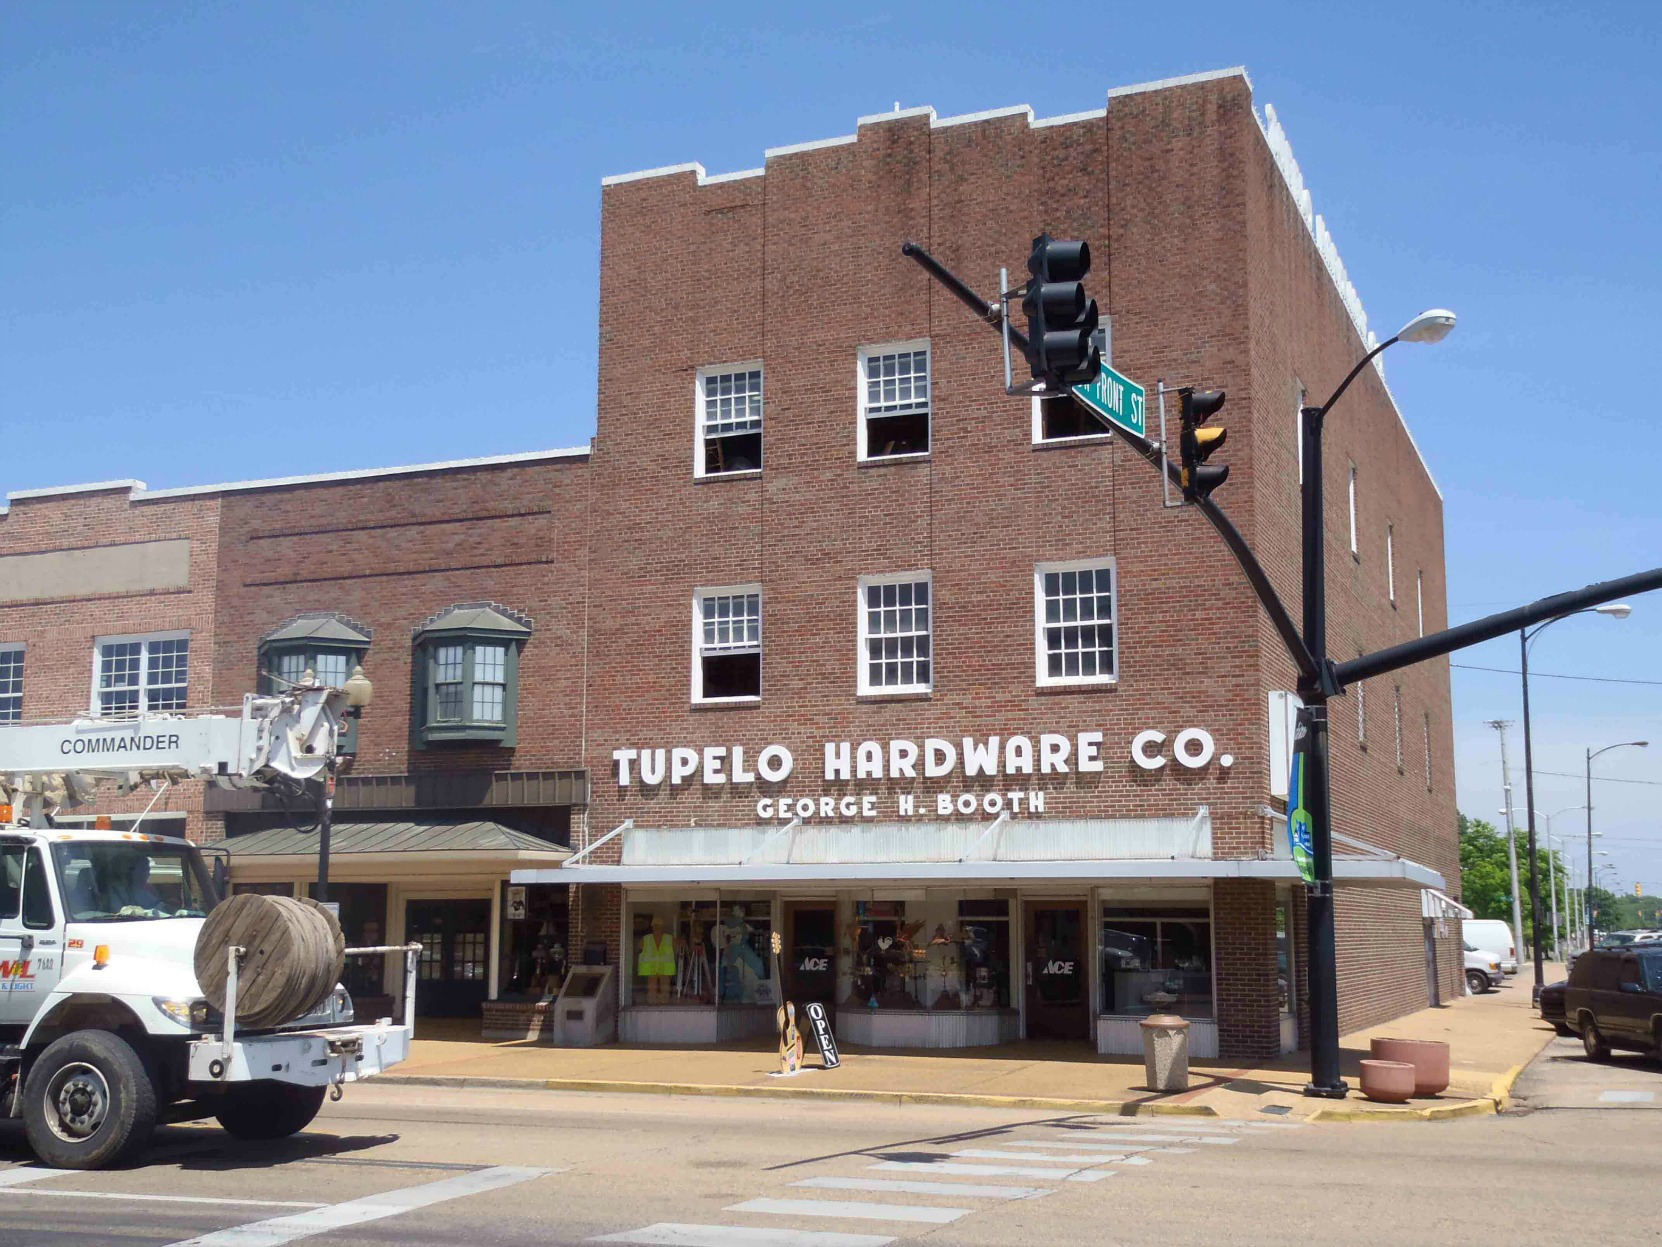 Tupelo Hardware Company, where Elvis Presley bought his first guitar. (photo by Mississippi Blues Travellers)